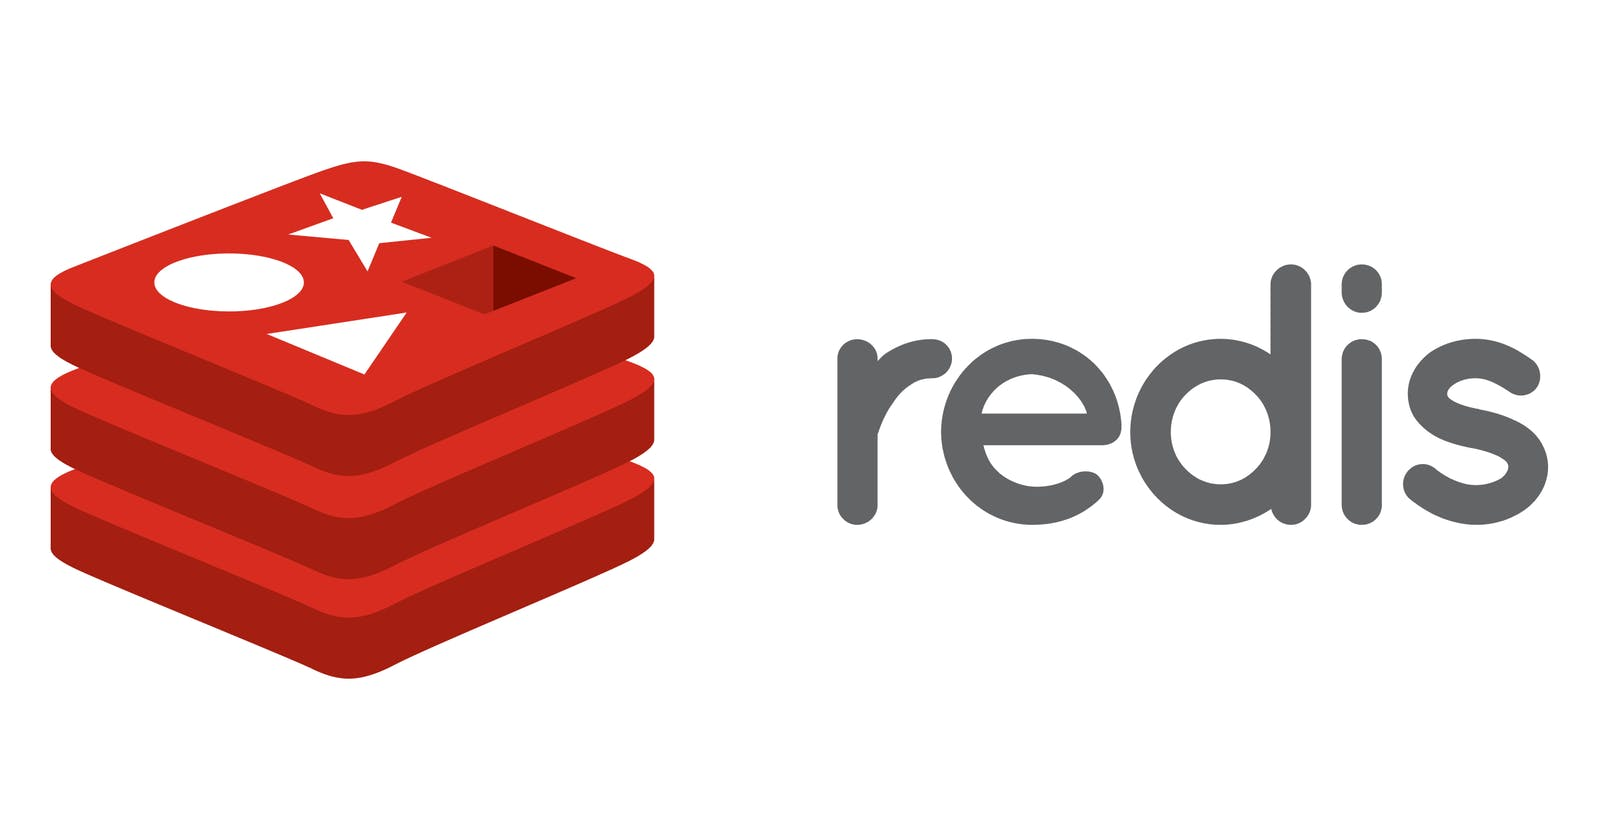 How to install and set up Redis